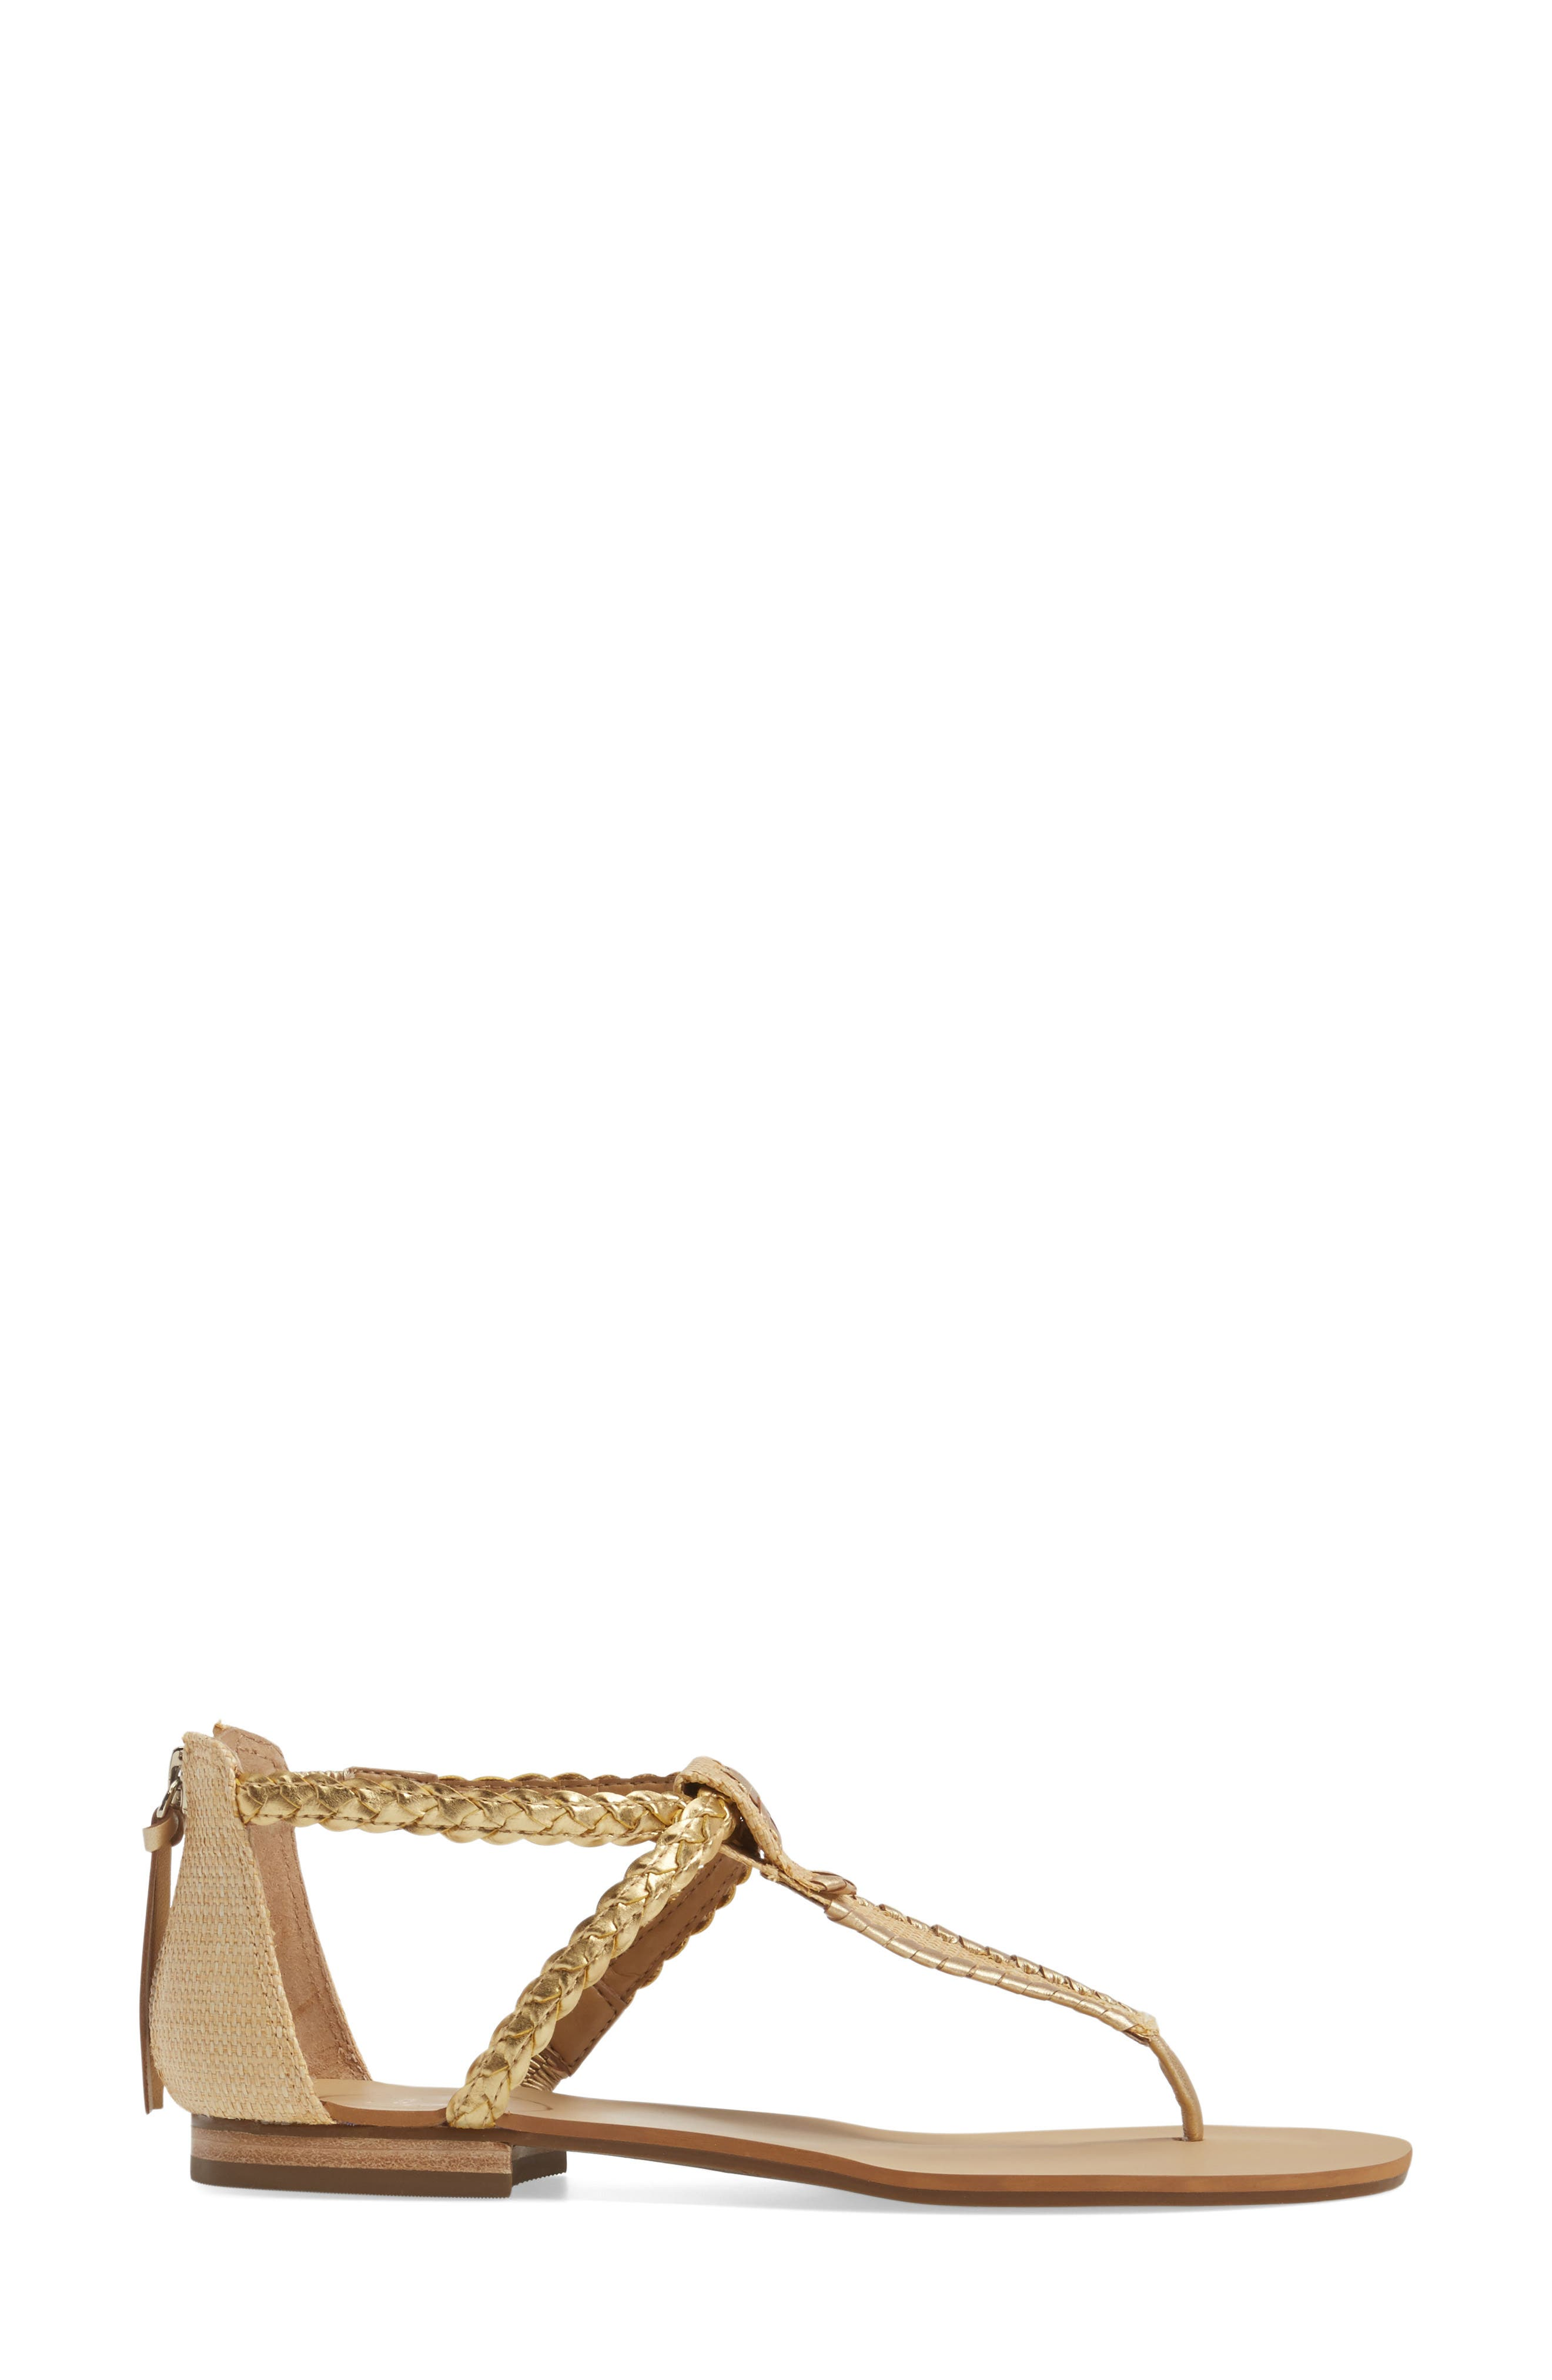 Jenna Sandal,                             Alternate thumbnail 3, color,                             Natural/ Gold Fabric